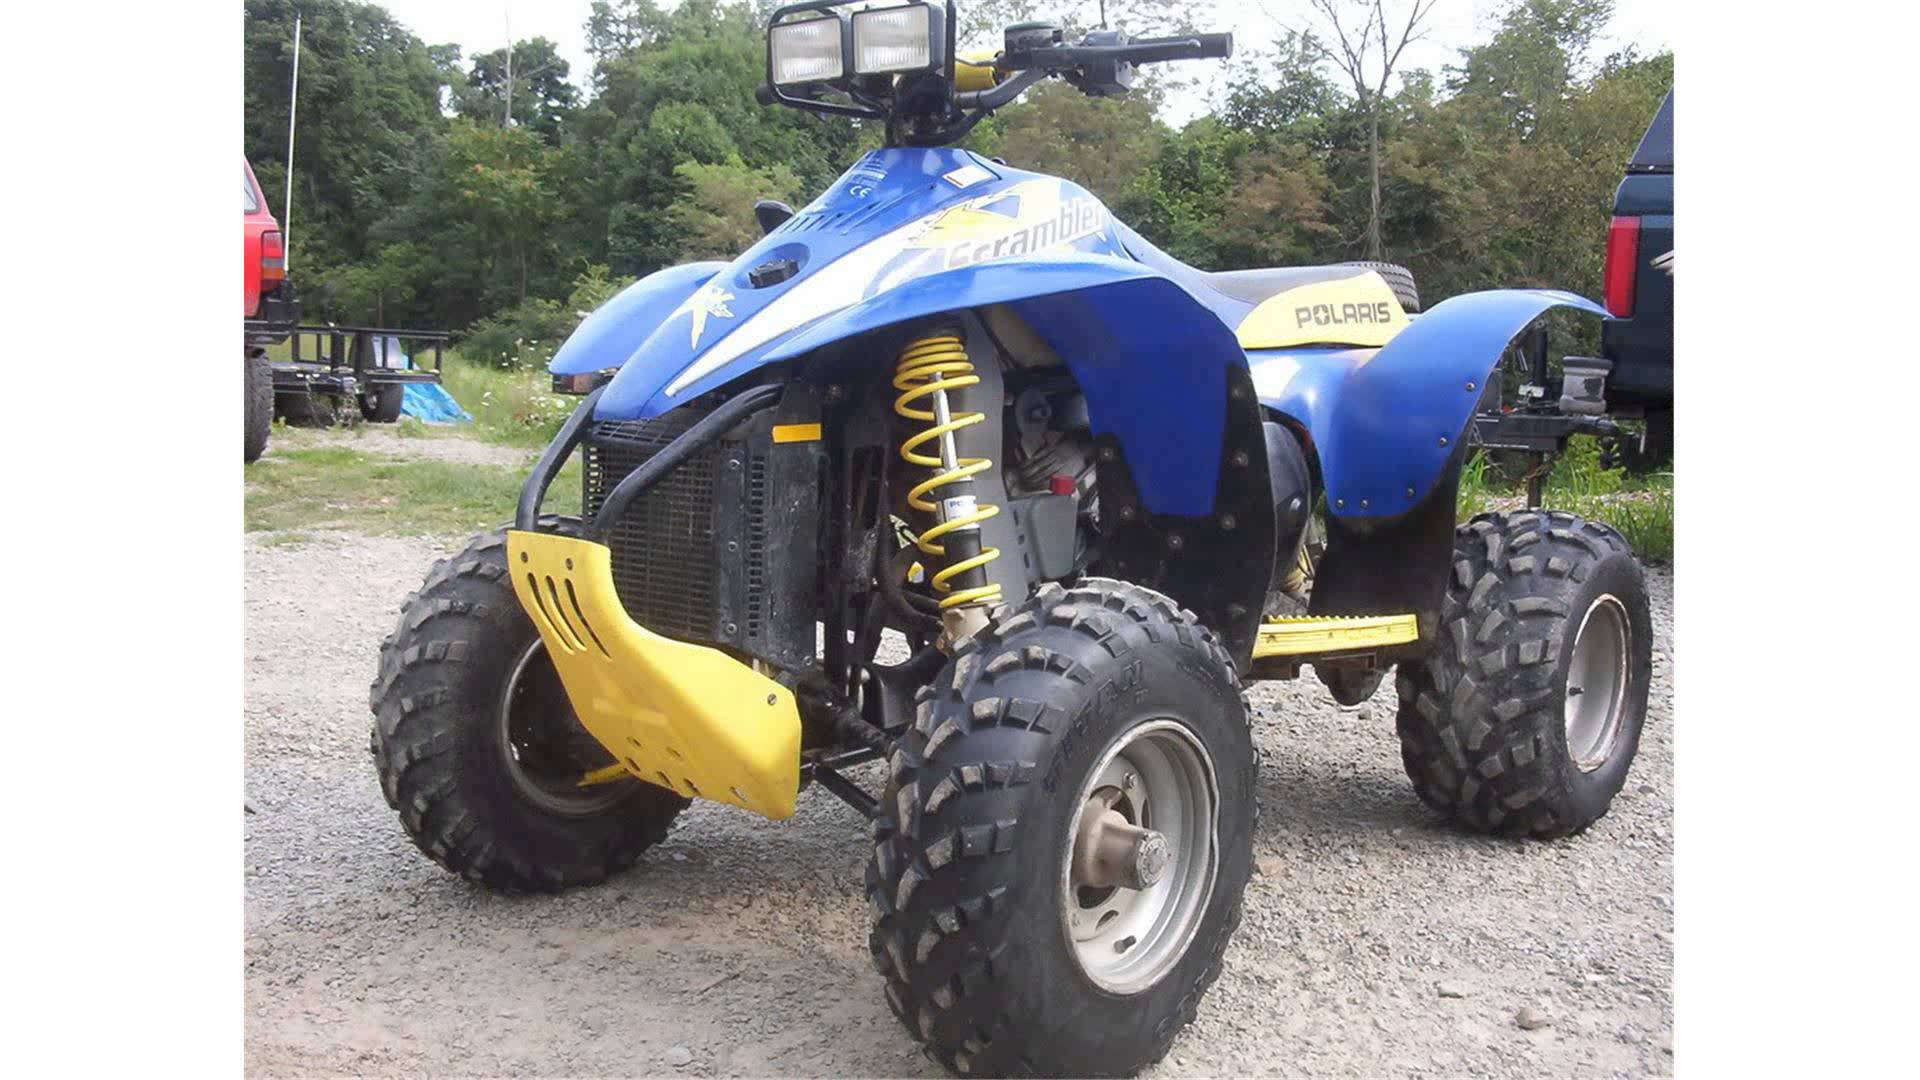 Polaris Scrambler 400 images #158385